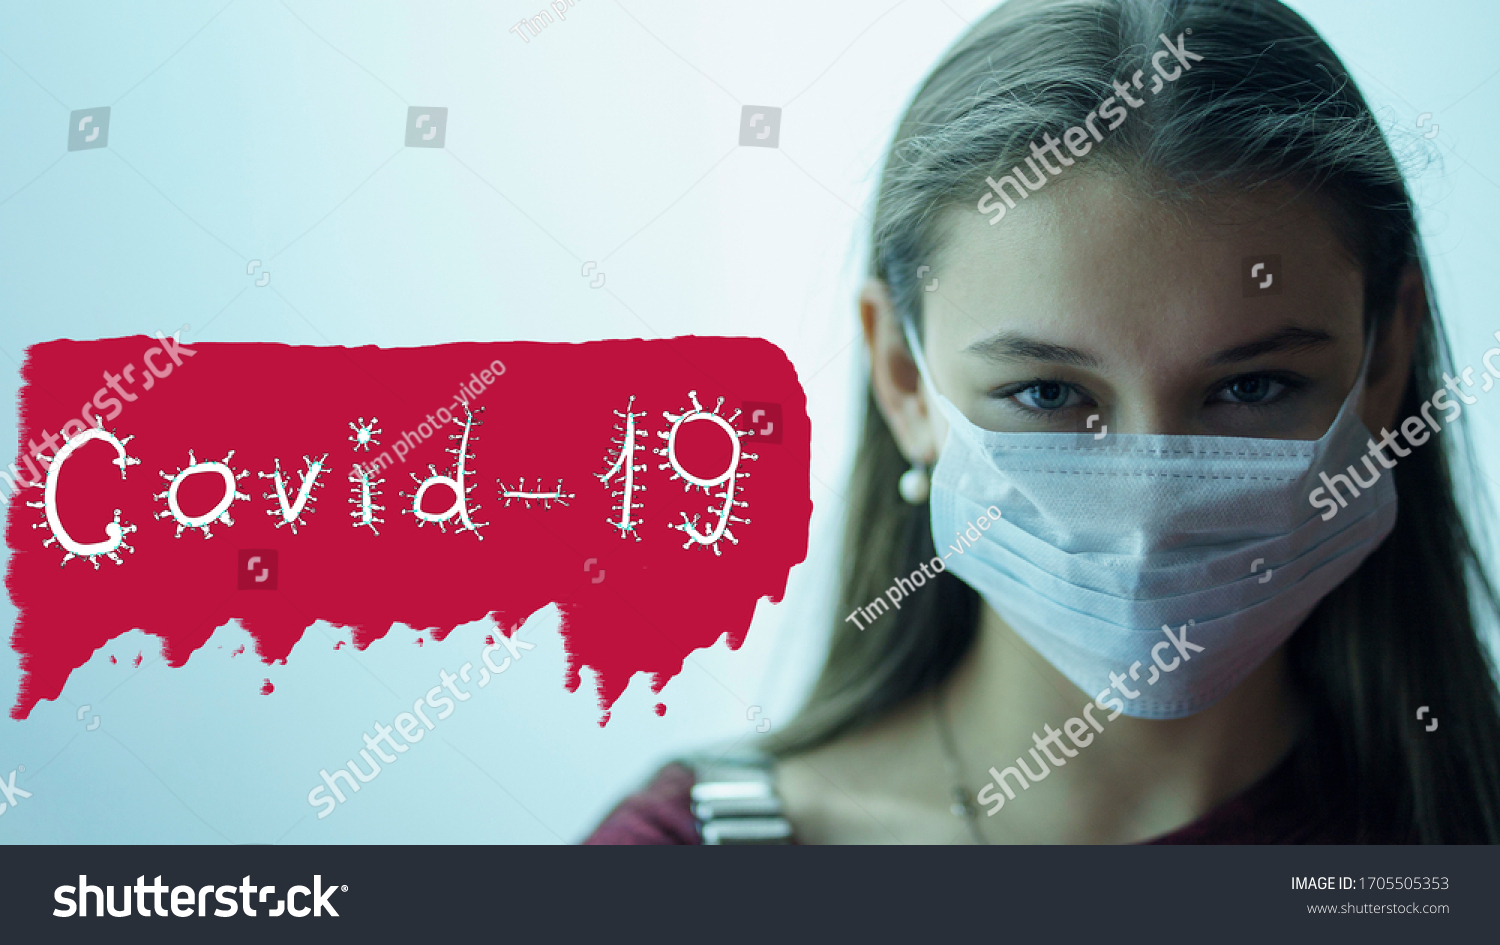 stock-photo-girl-in-a-medical-mask-from-